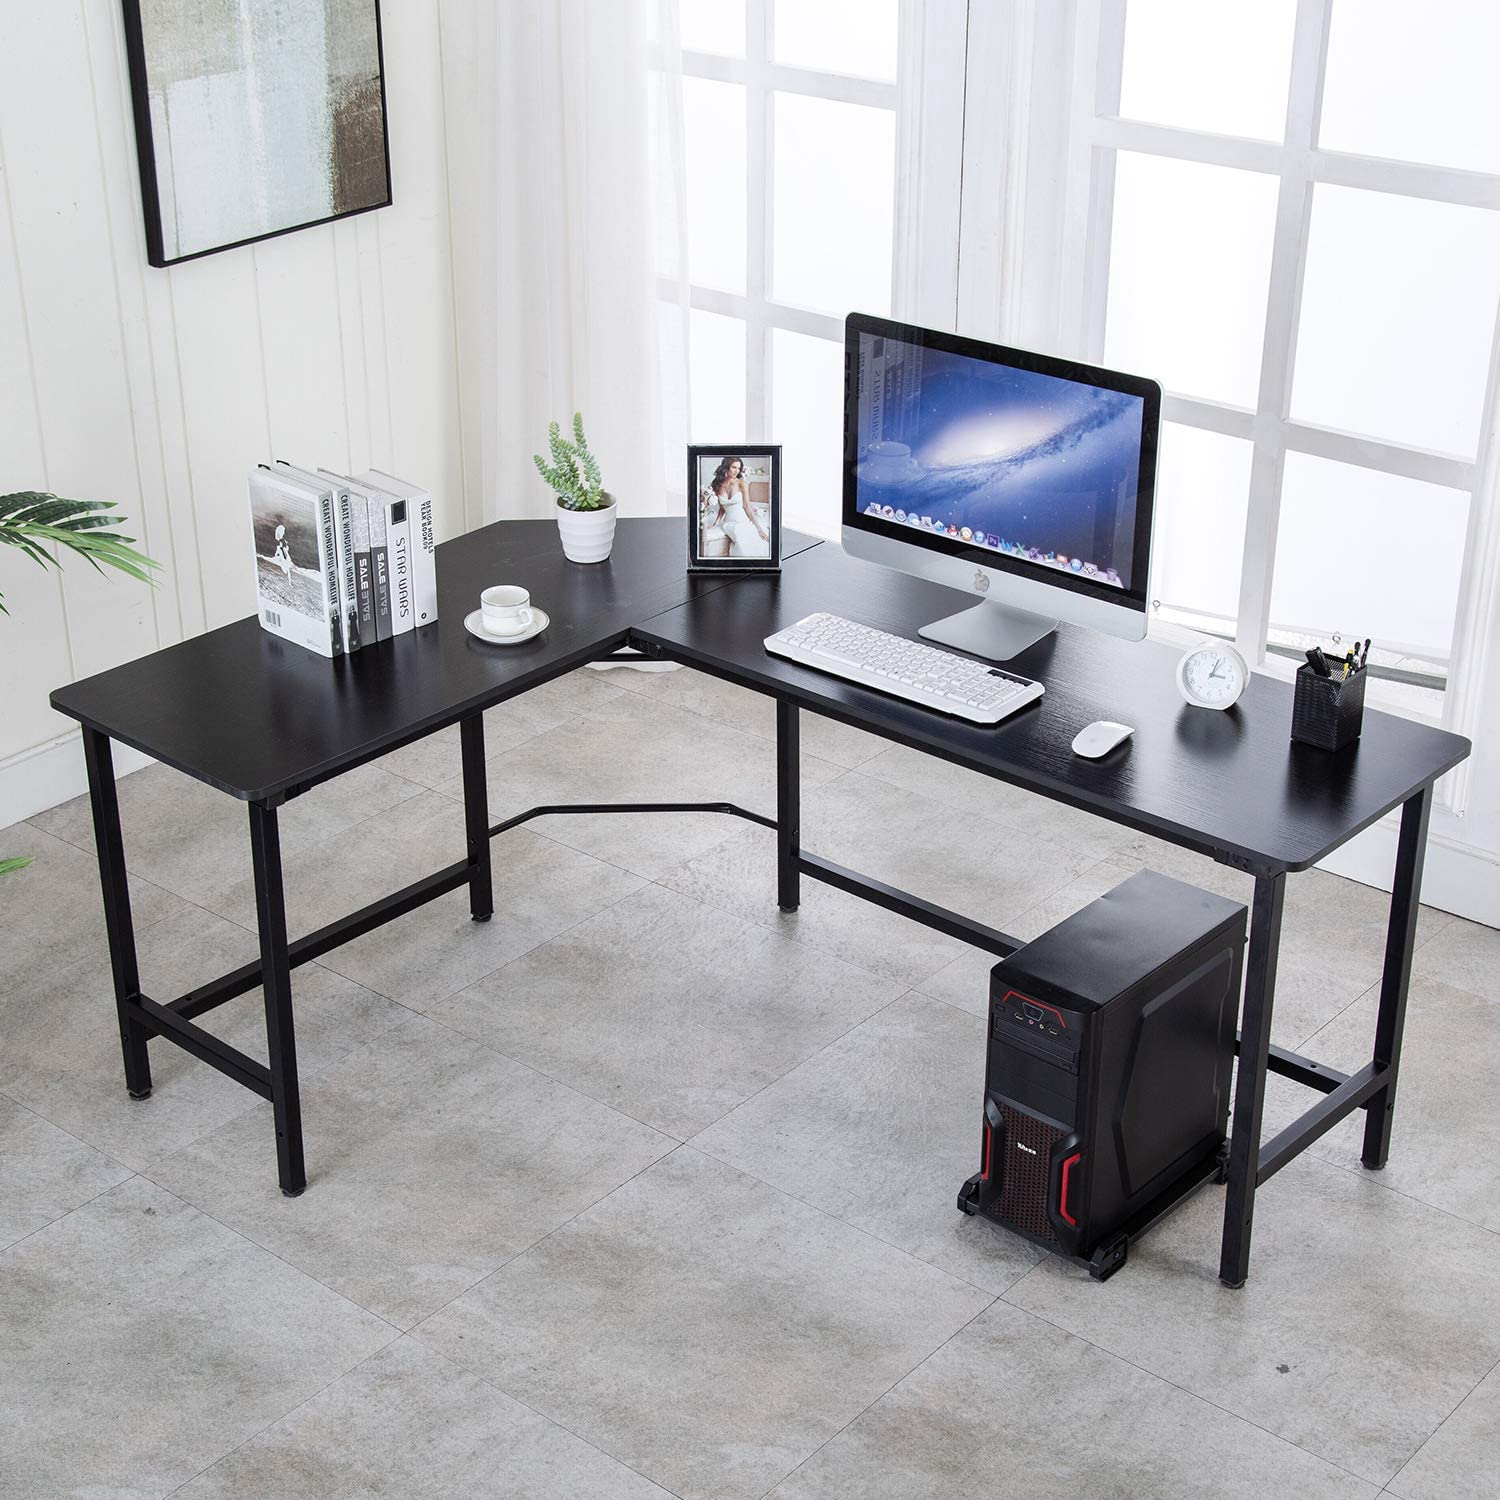 Modern Minimalilst L-Shaped Desk